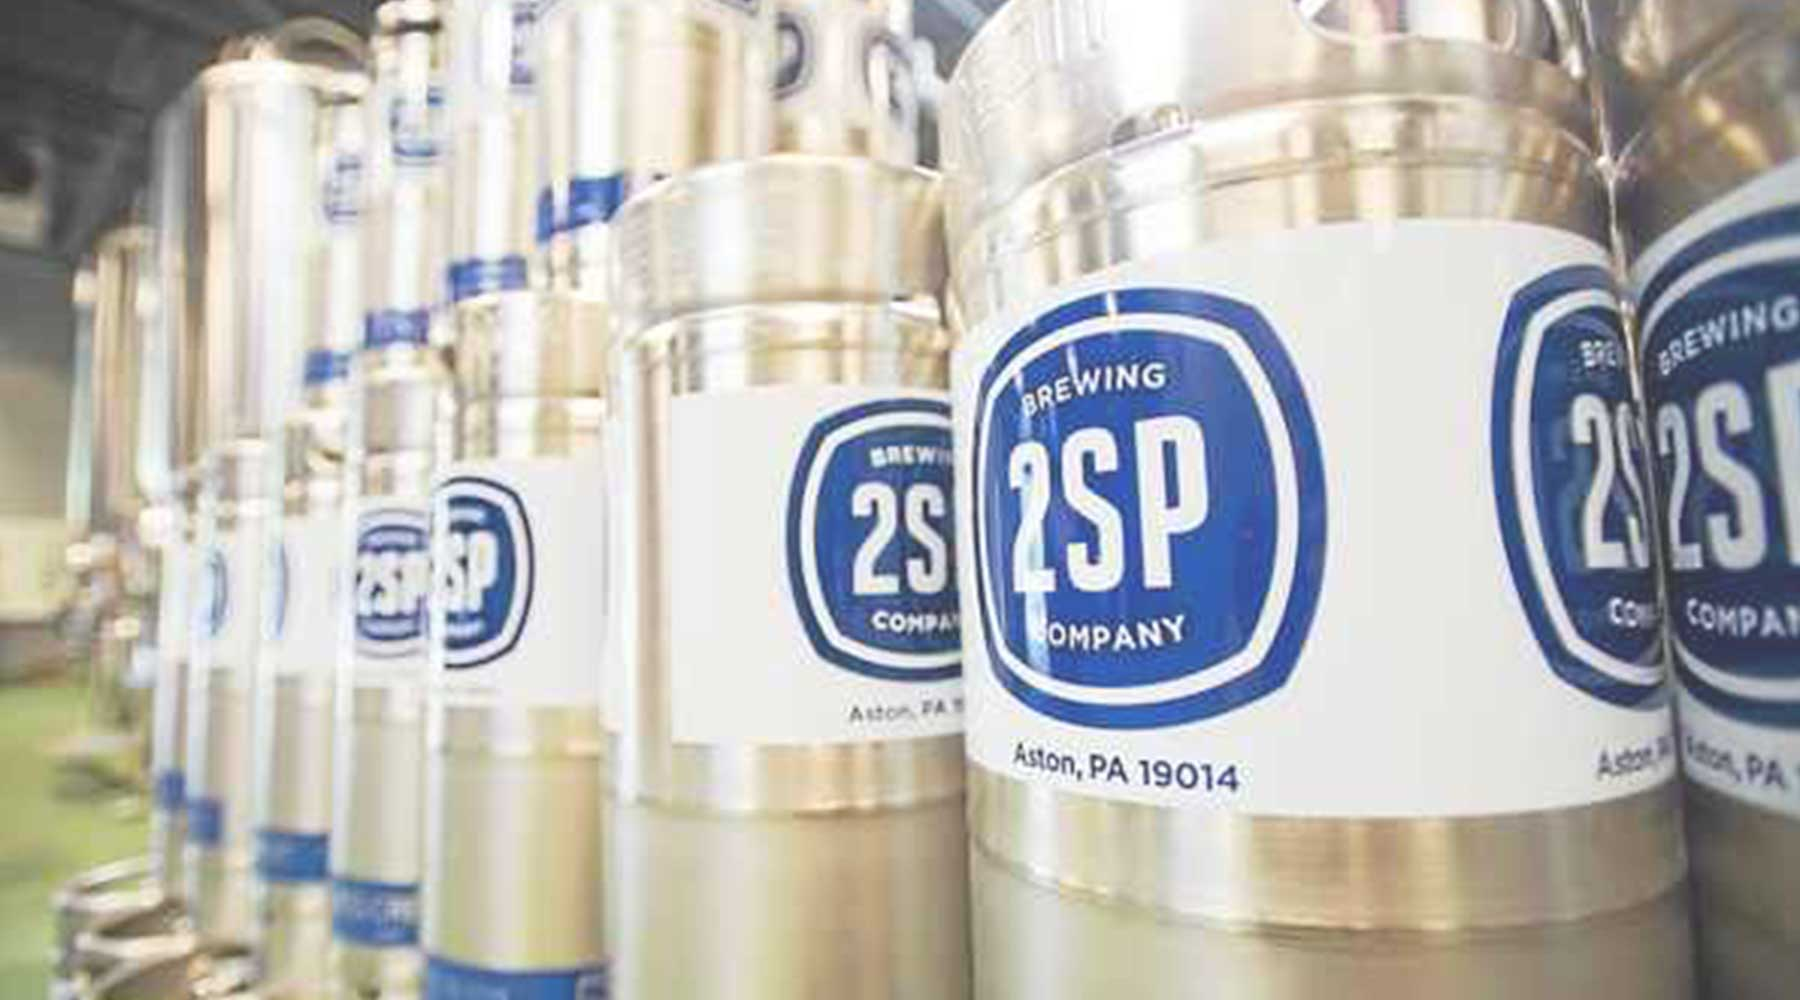 2SP Brewing Company | Just Wine